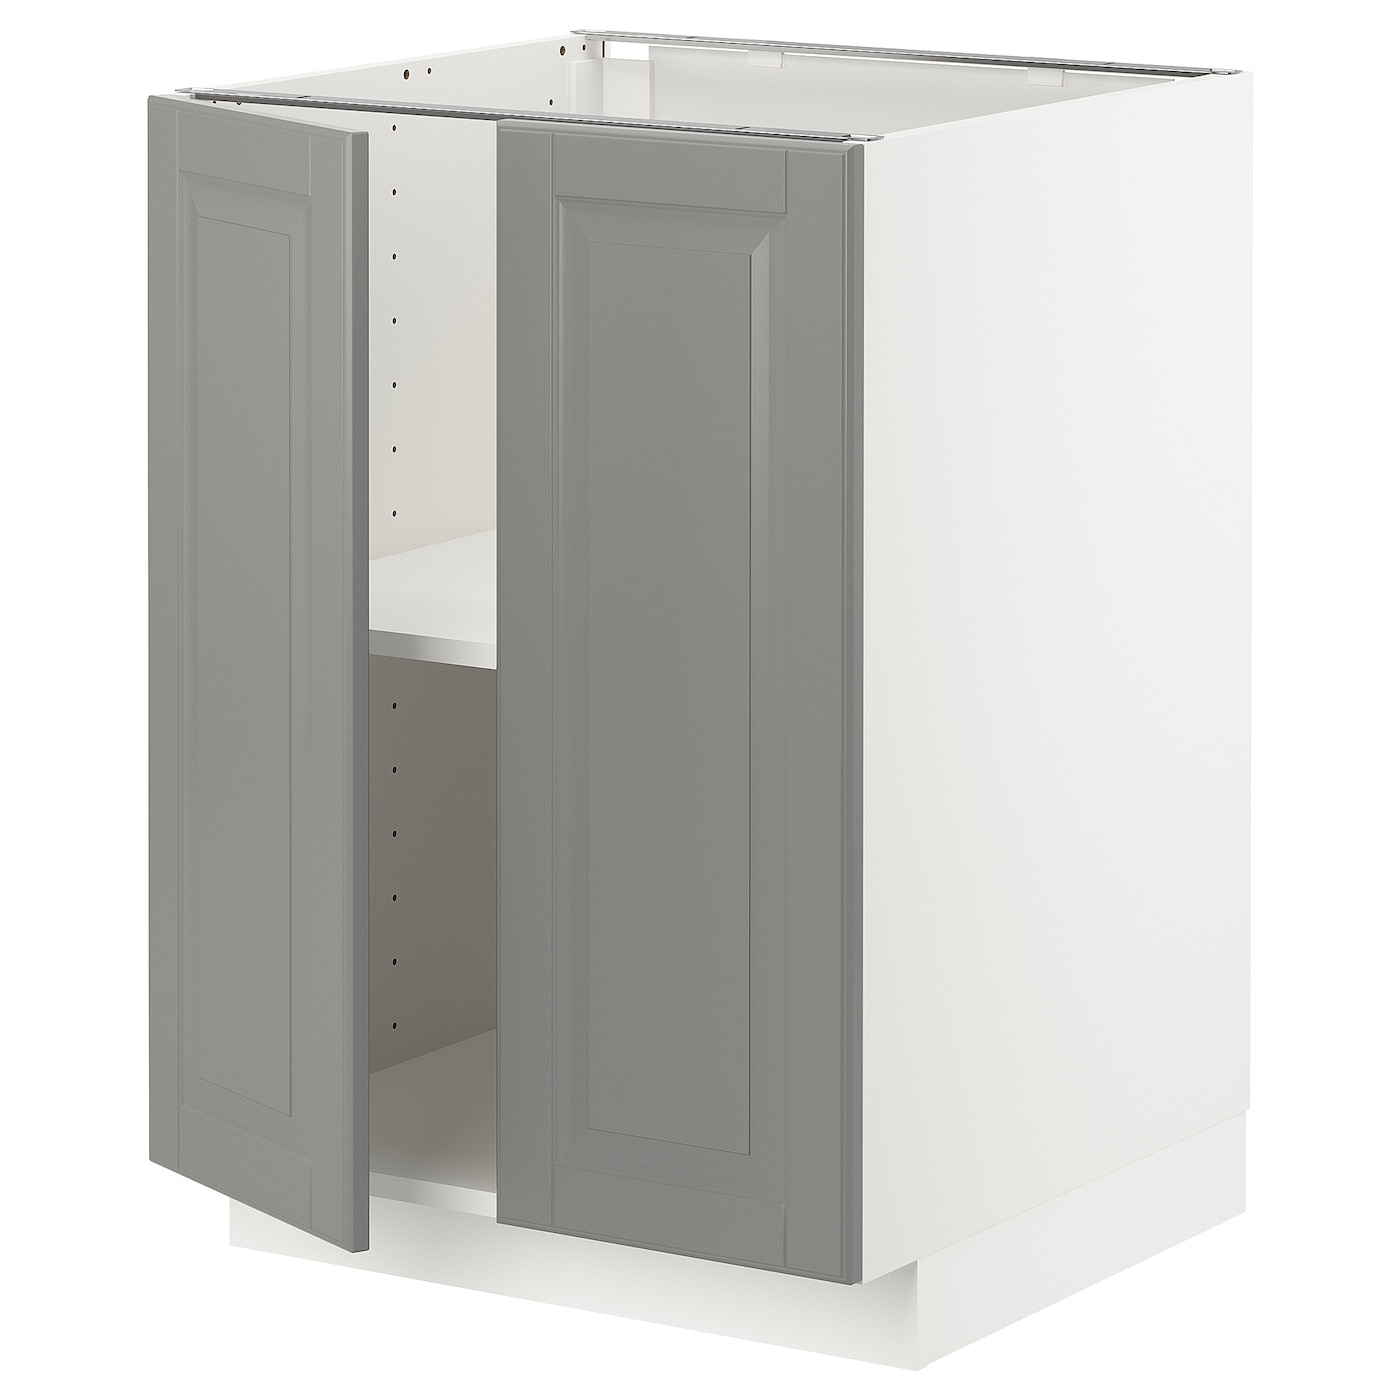 Base Cabinet With Shelves 2 Doors Metod White Bodbyn Grey